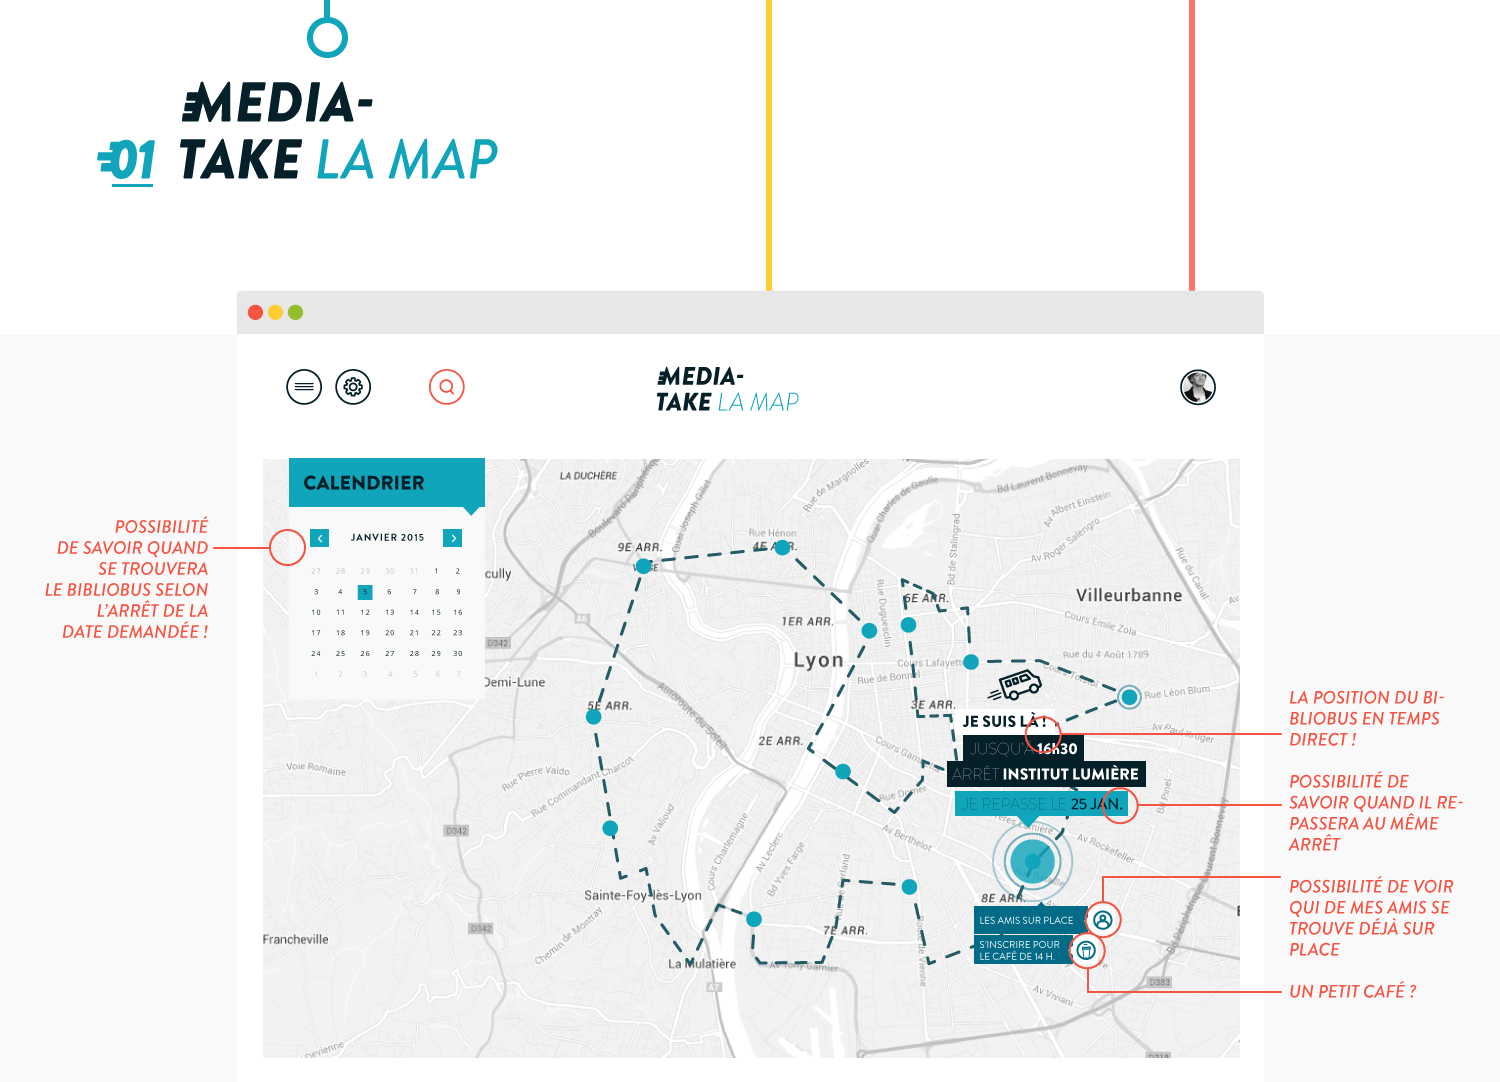 MediaTake - la culture mobile - web map par Quentin Degrange, designer graphique freelance